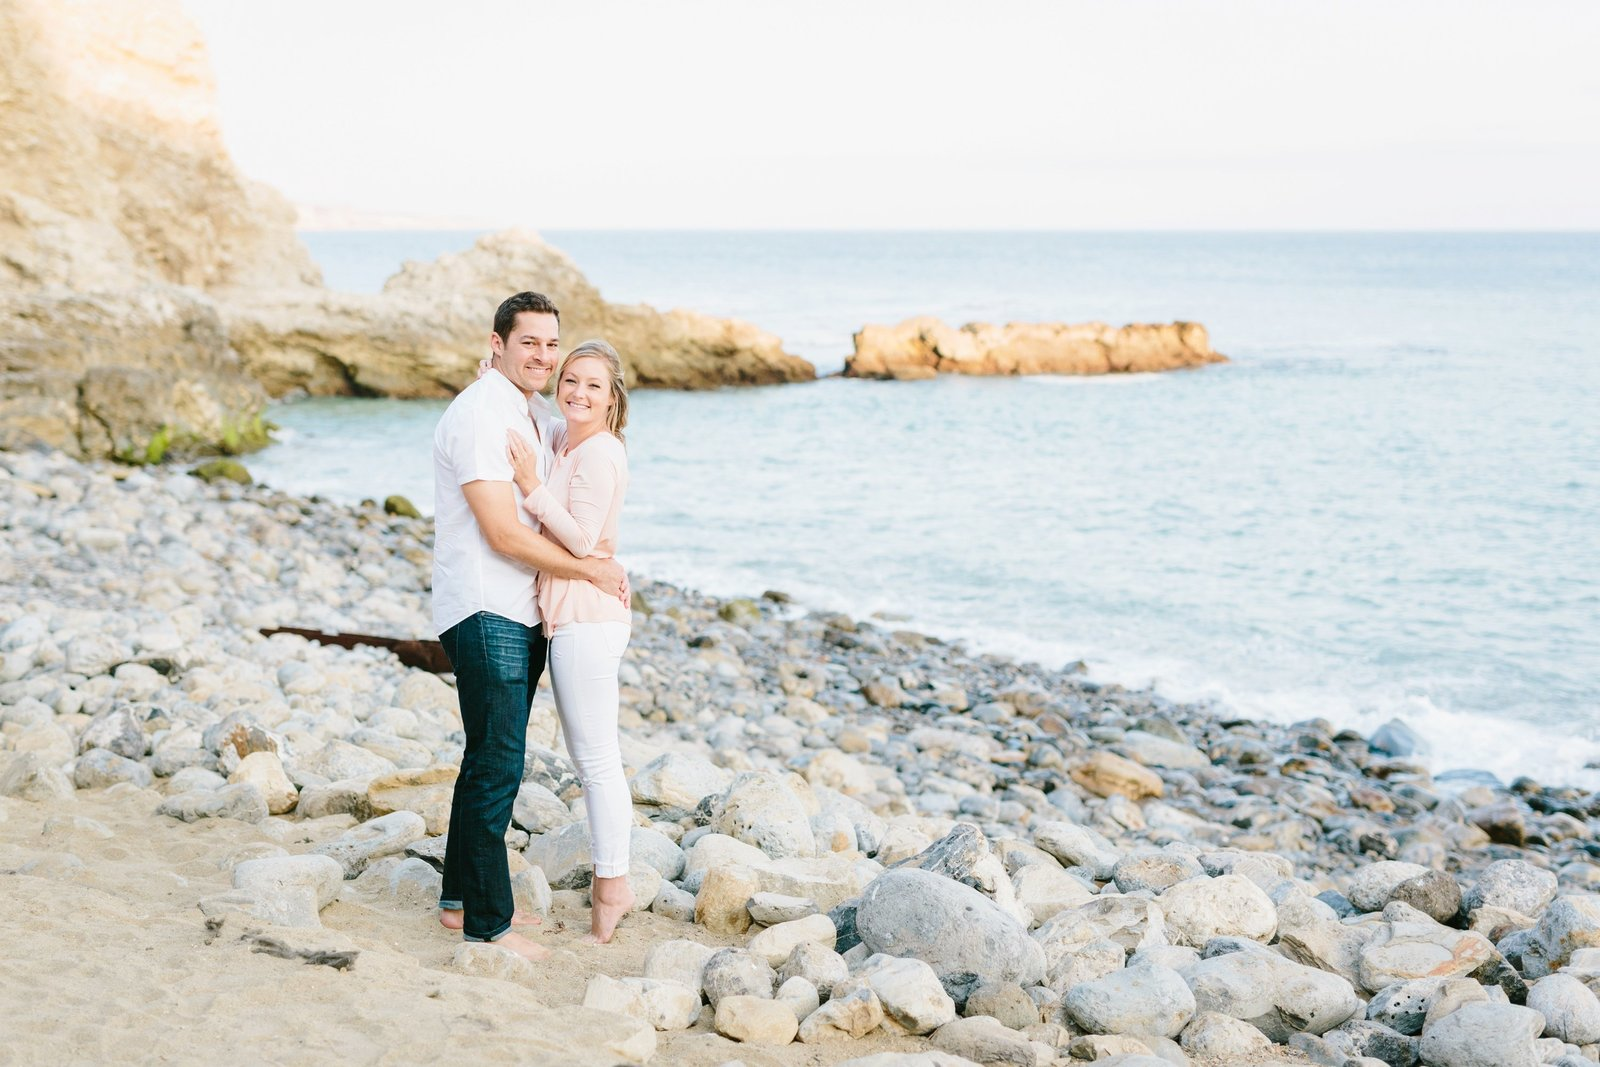 Engagement Photos-Jodee Debes Photography-016